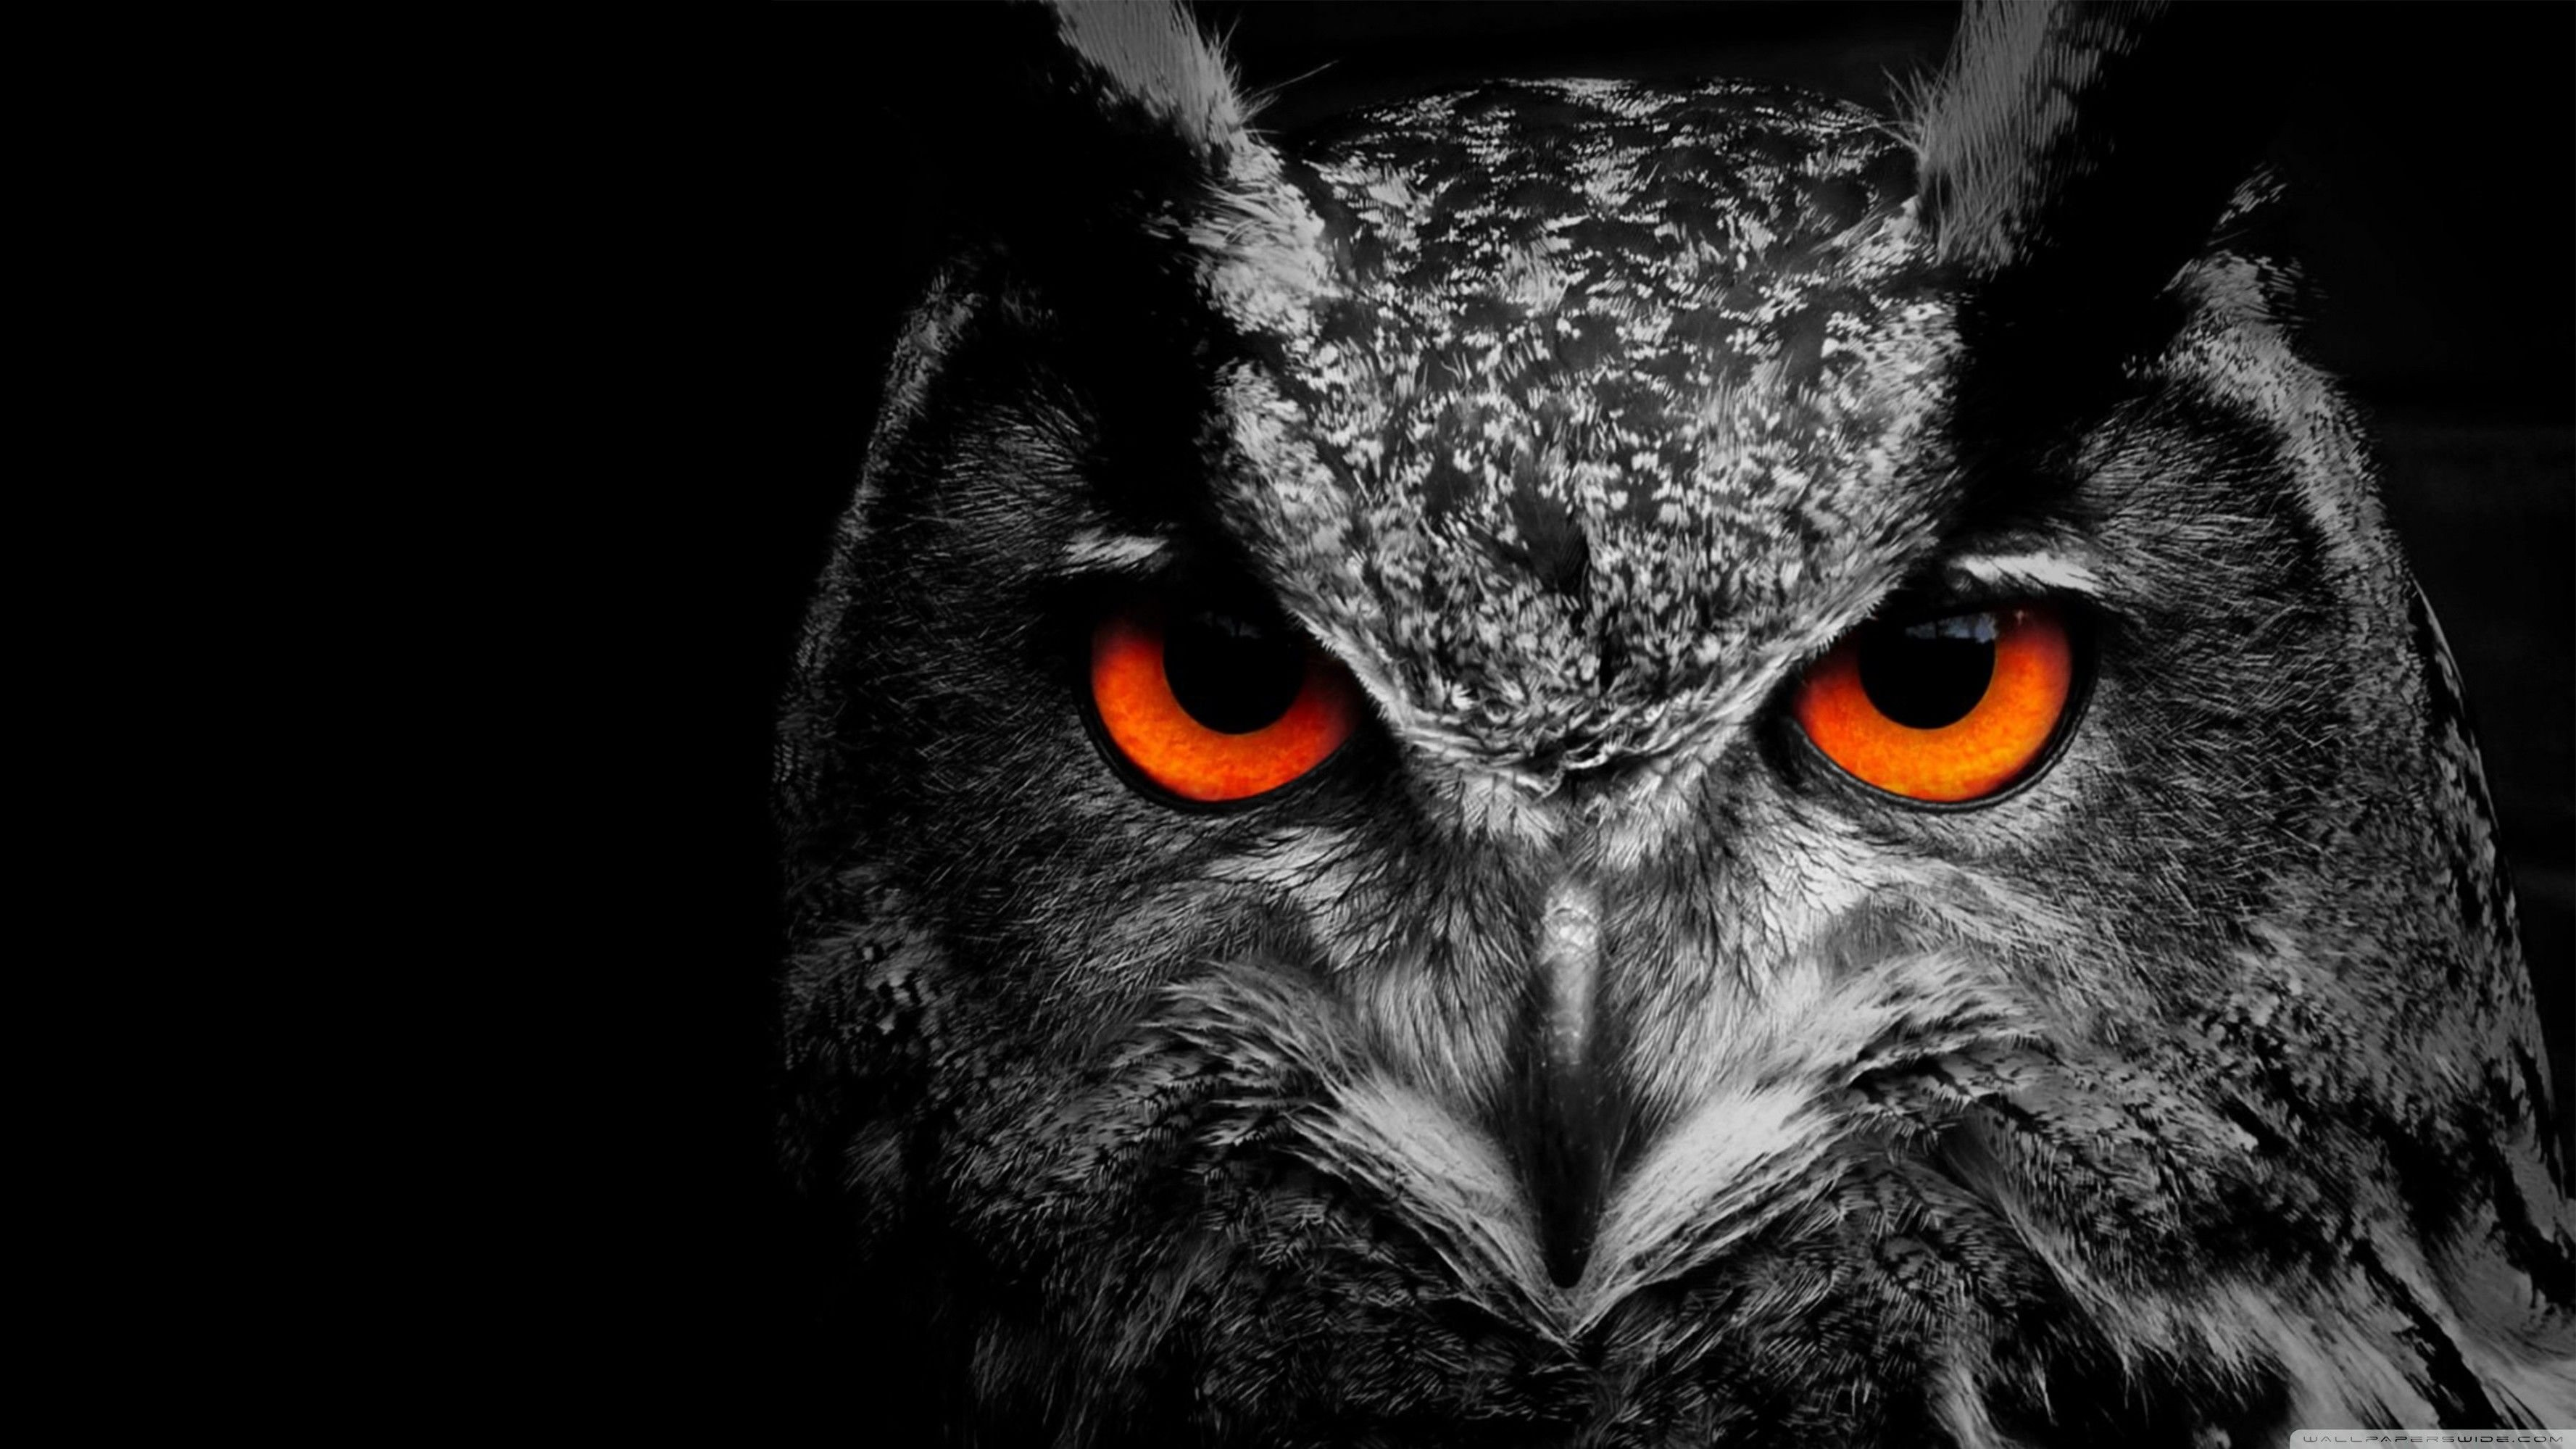 Black Owl Wallpapers Top Free Black Owl Backgrounds Wallpaperaccess